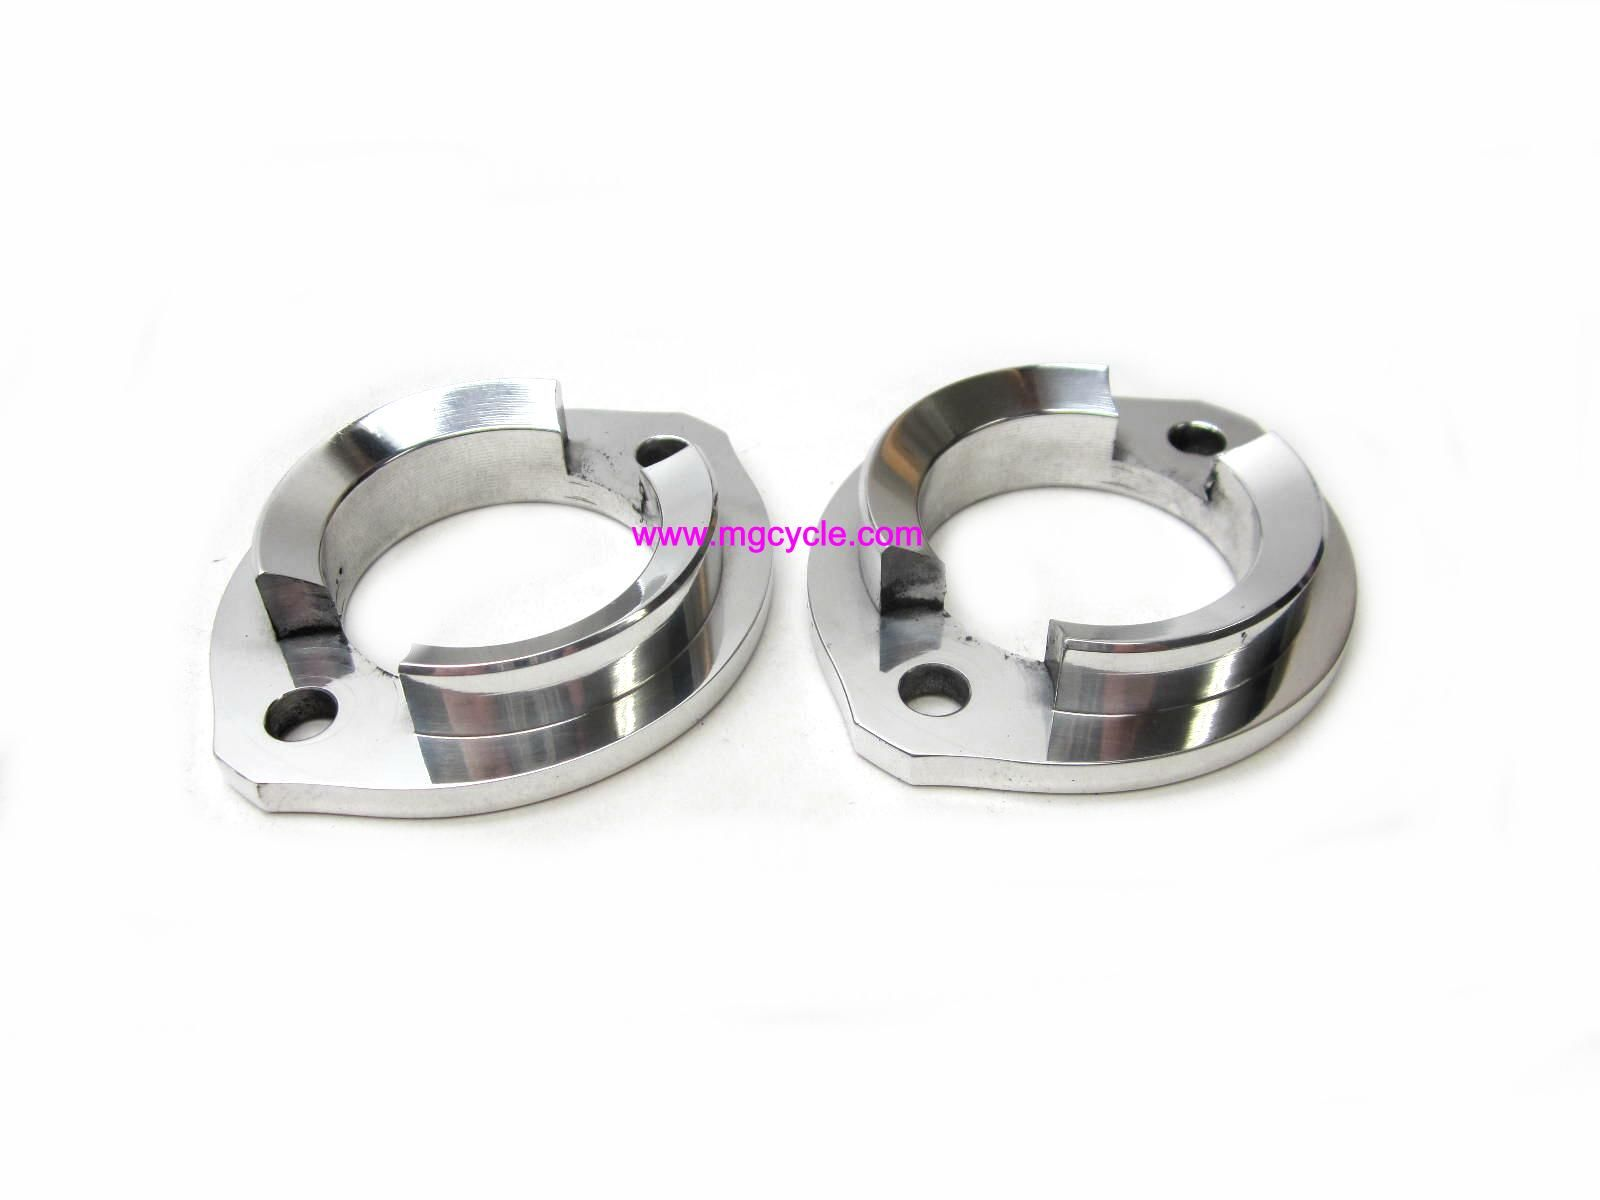 CNC aluminum exhaust flange pair, 45mm